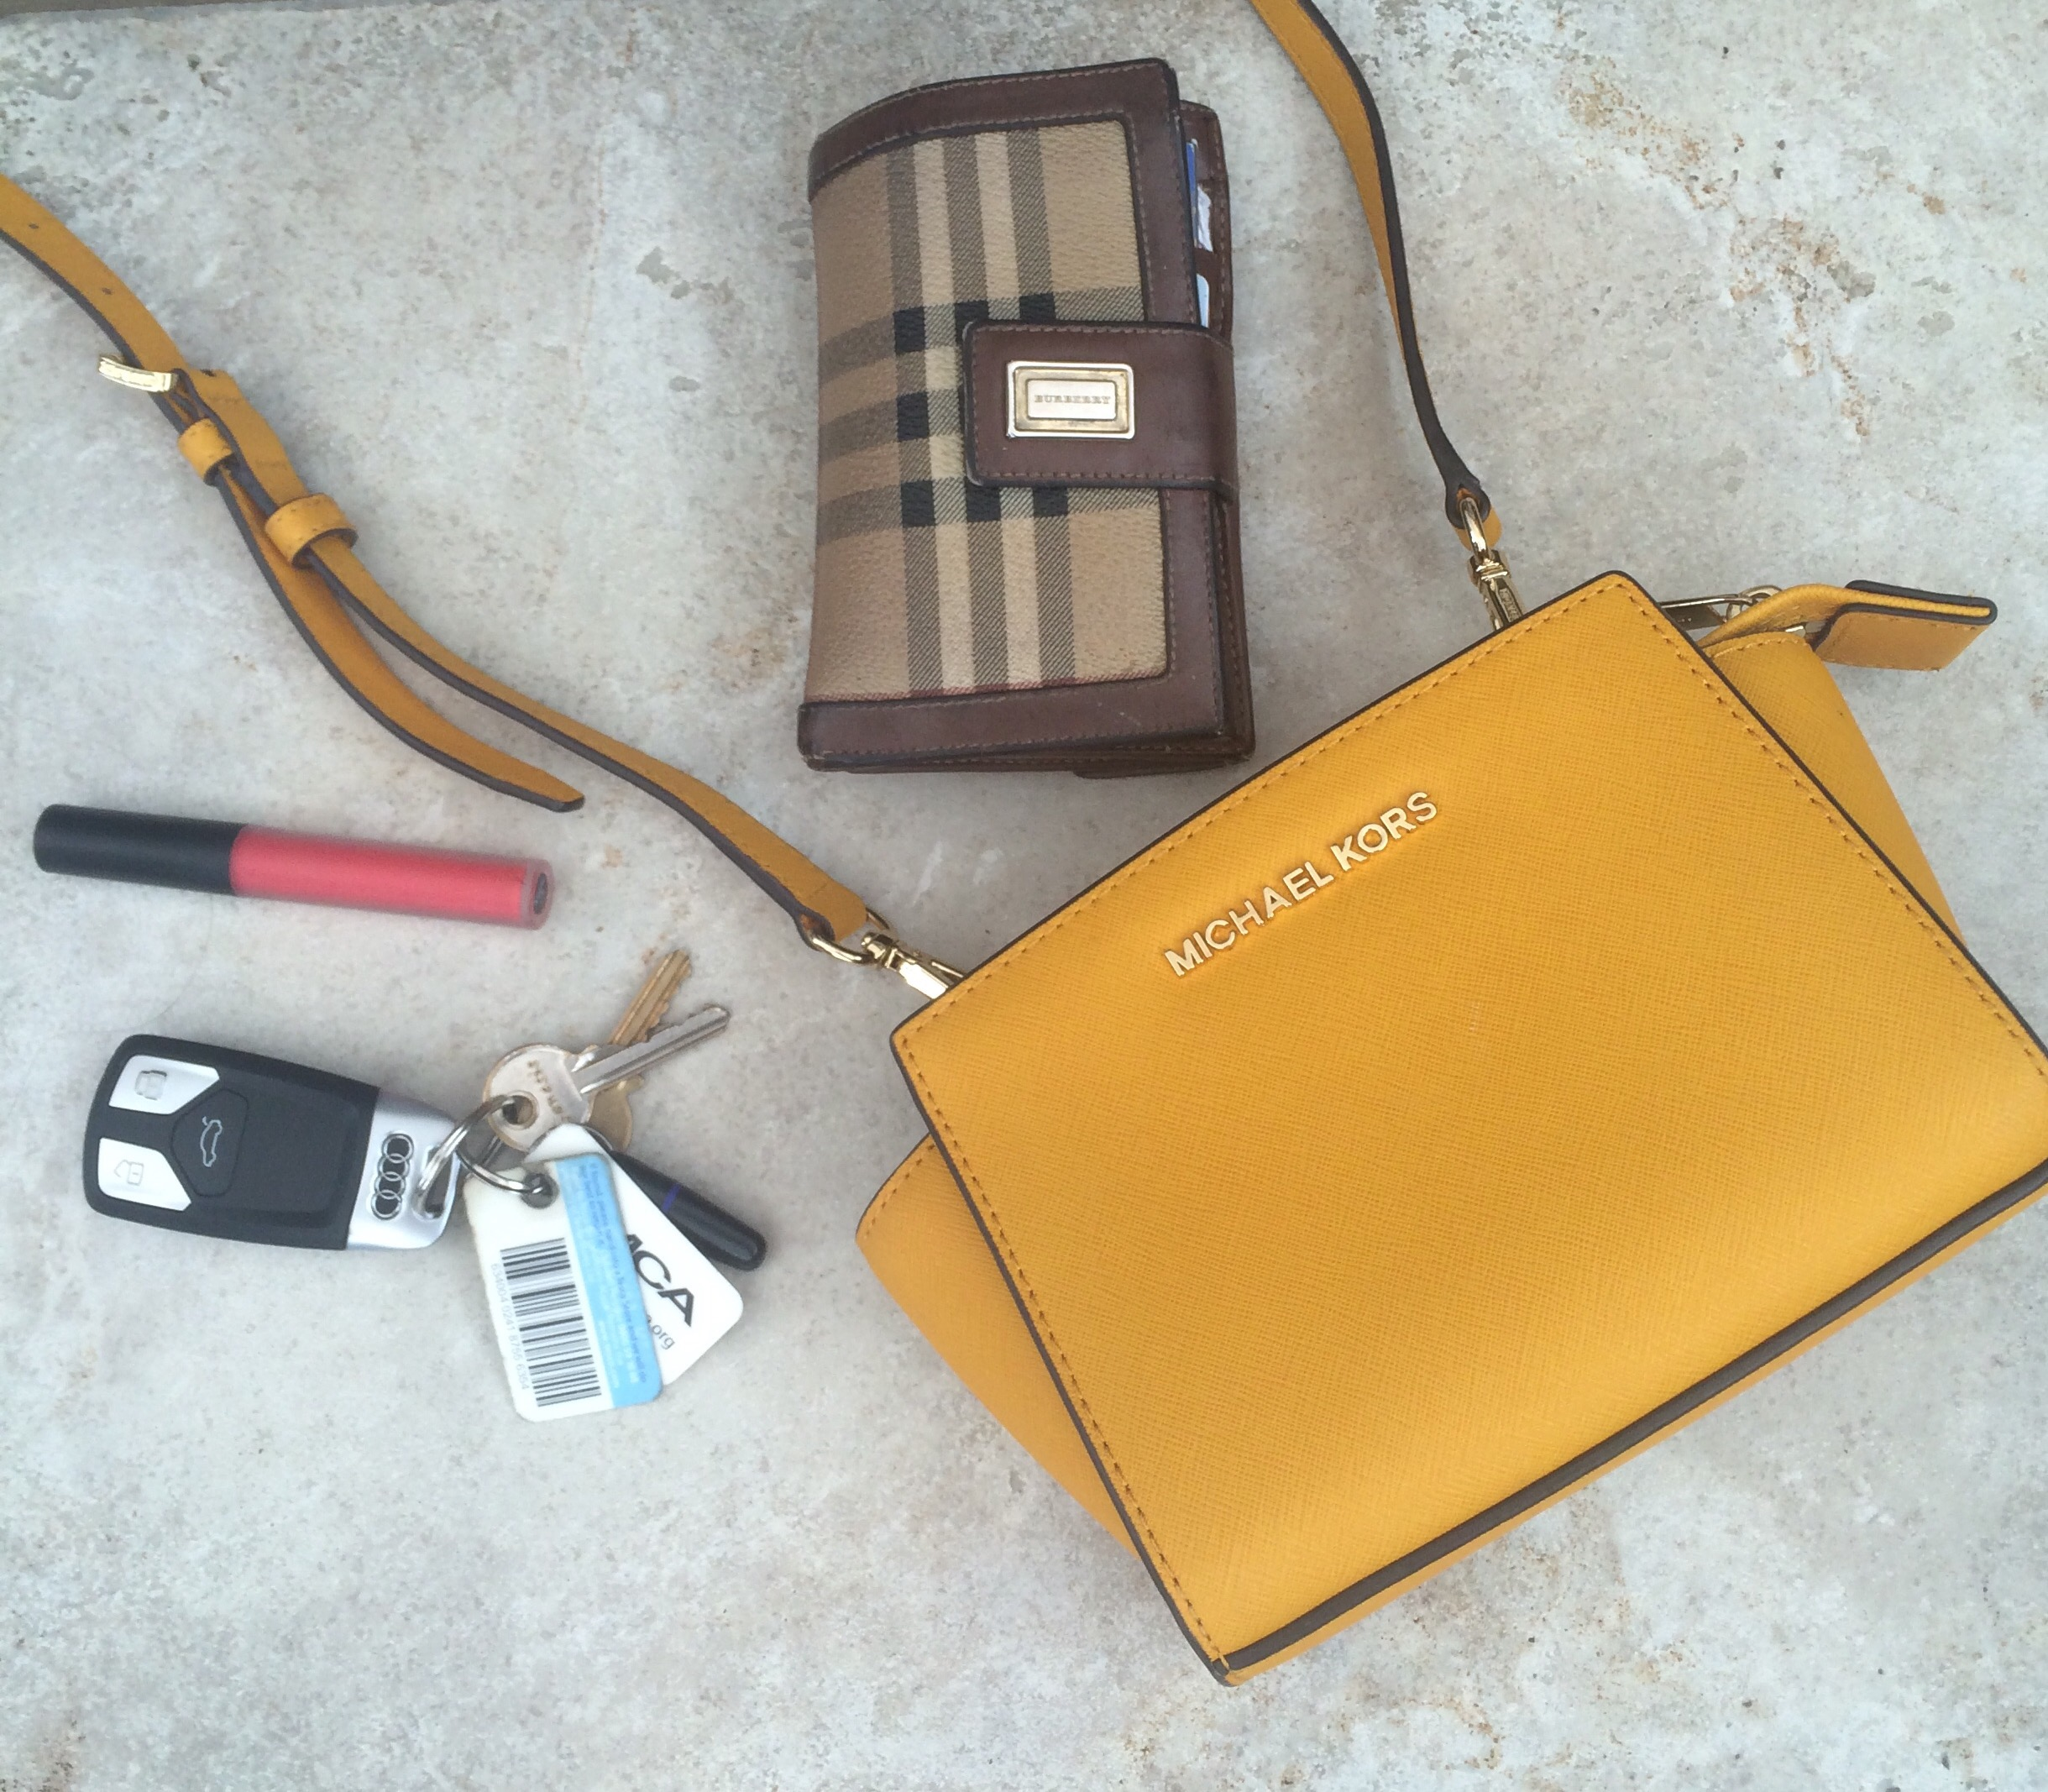 small Michael Kors handbag with only keys , phone and lipstick